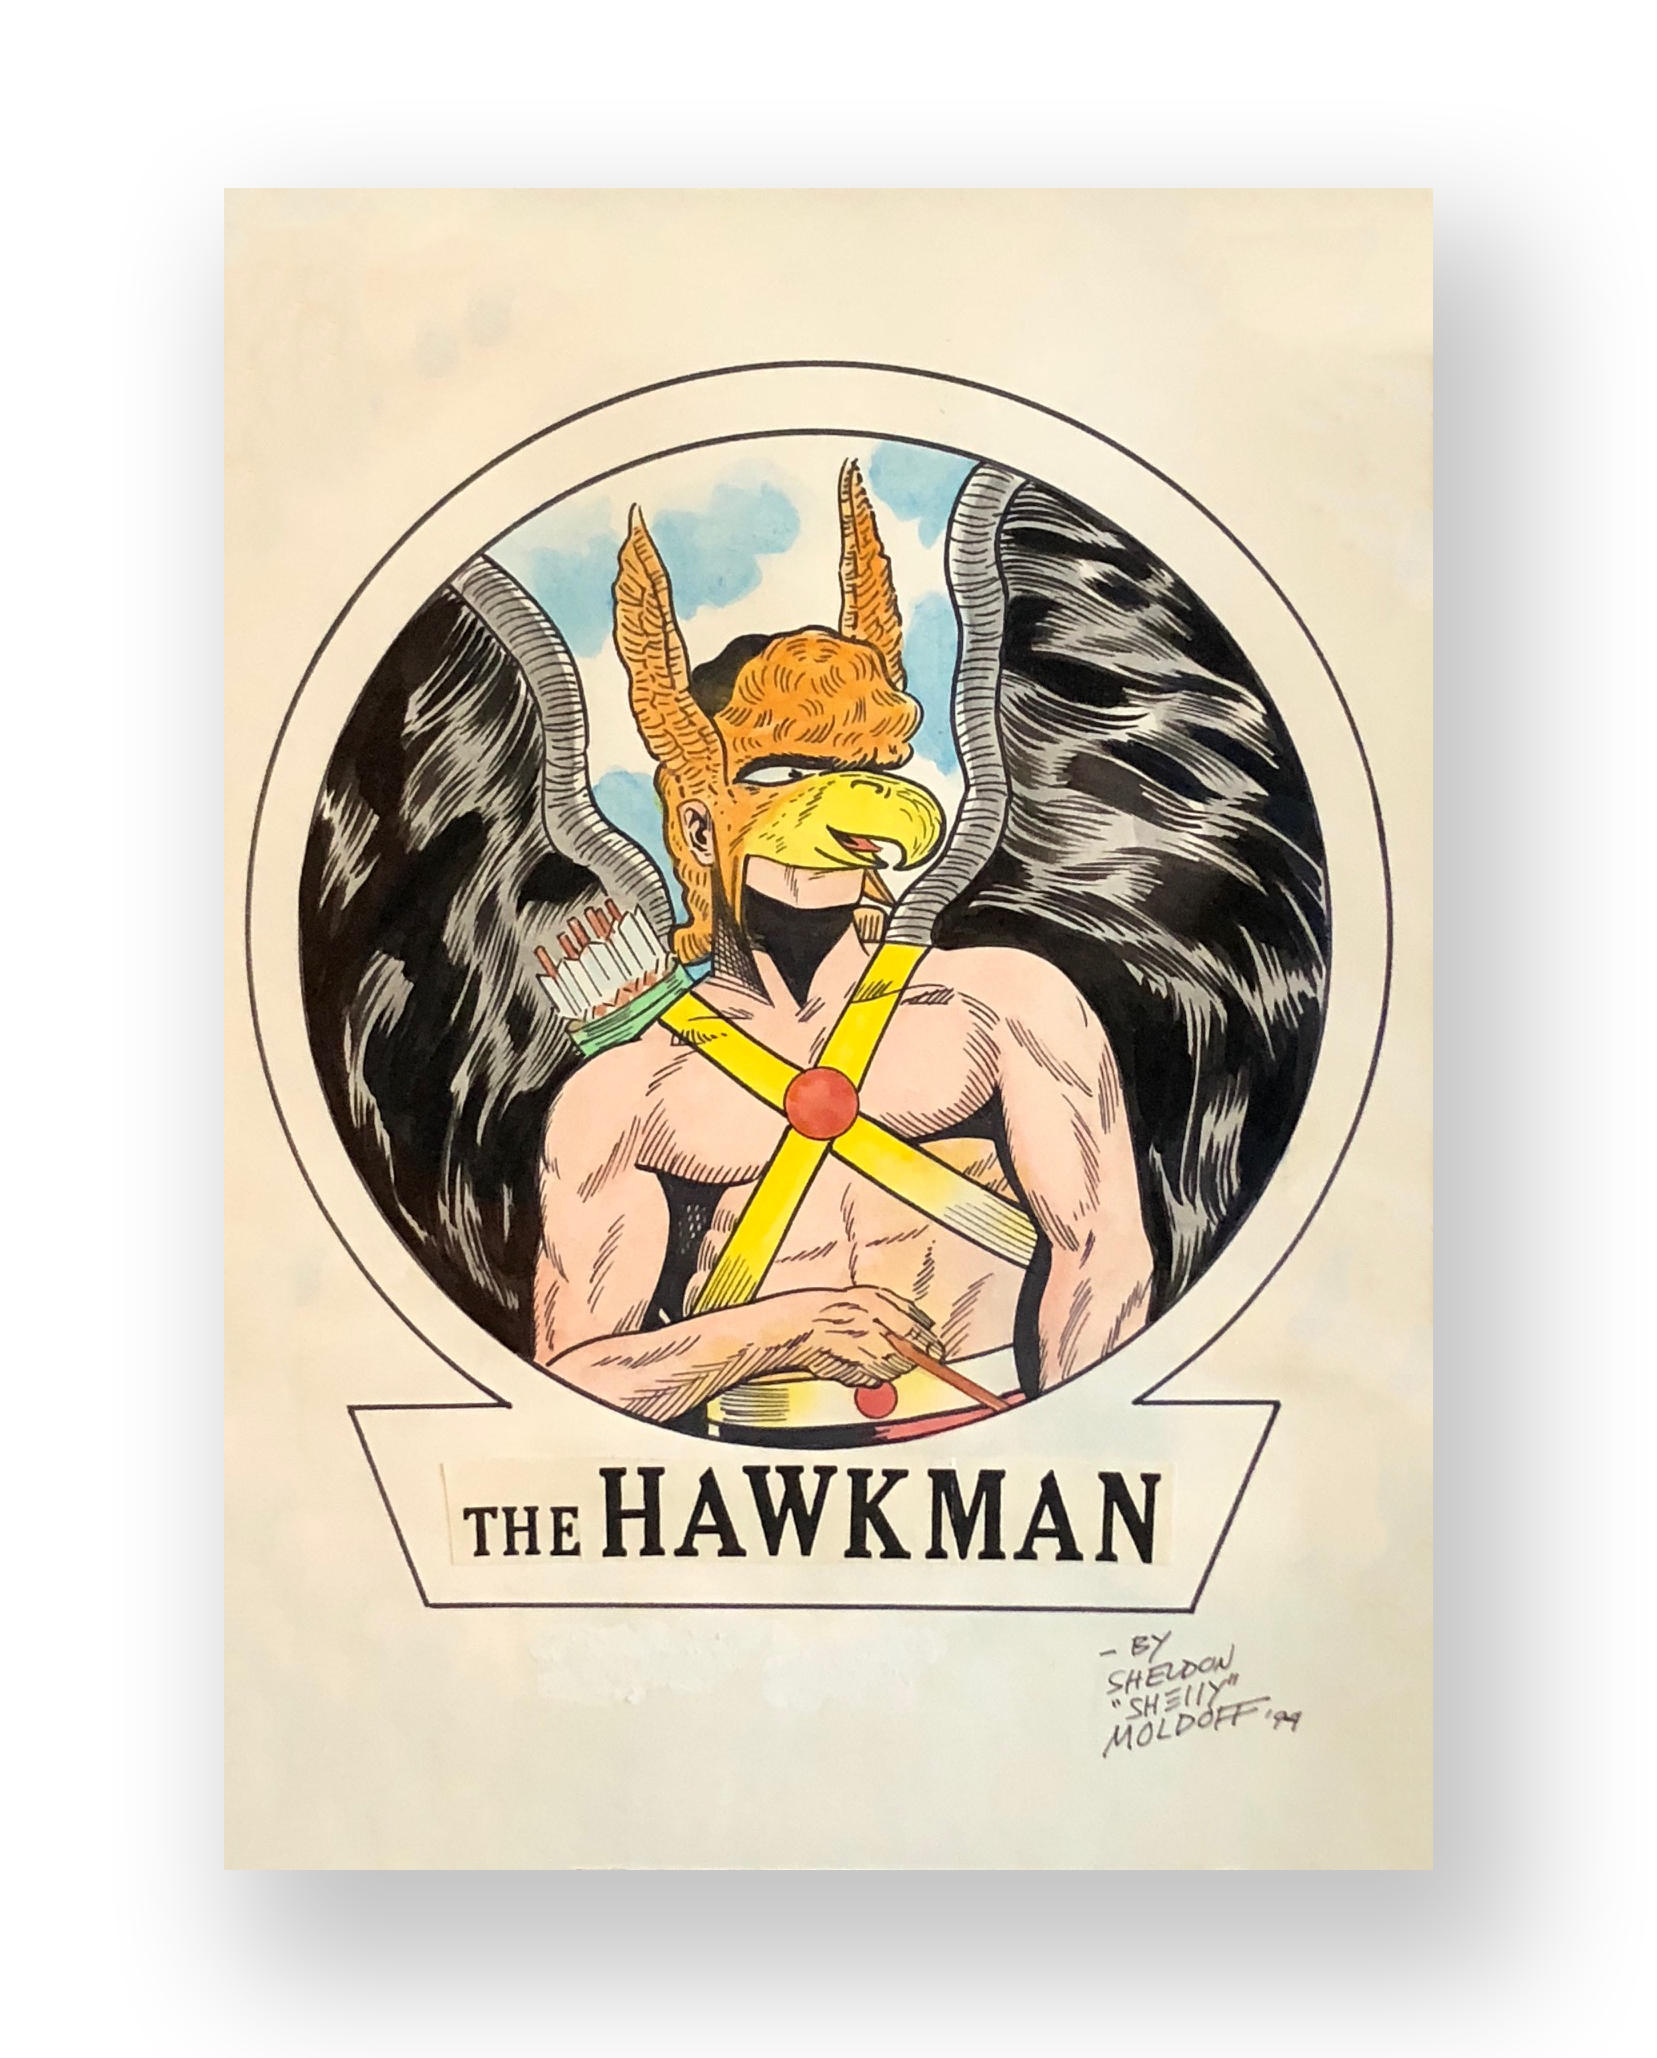 "Sheldon Moldoff  ""Hawkman""  Original illustration  Mixed media on thick stock paper  8.5 x 11.5 inches  1994"